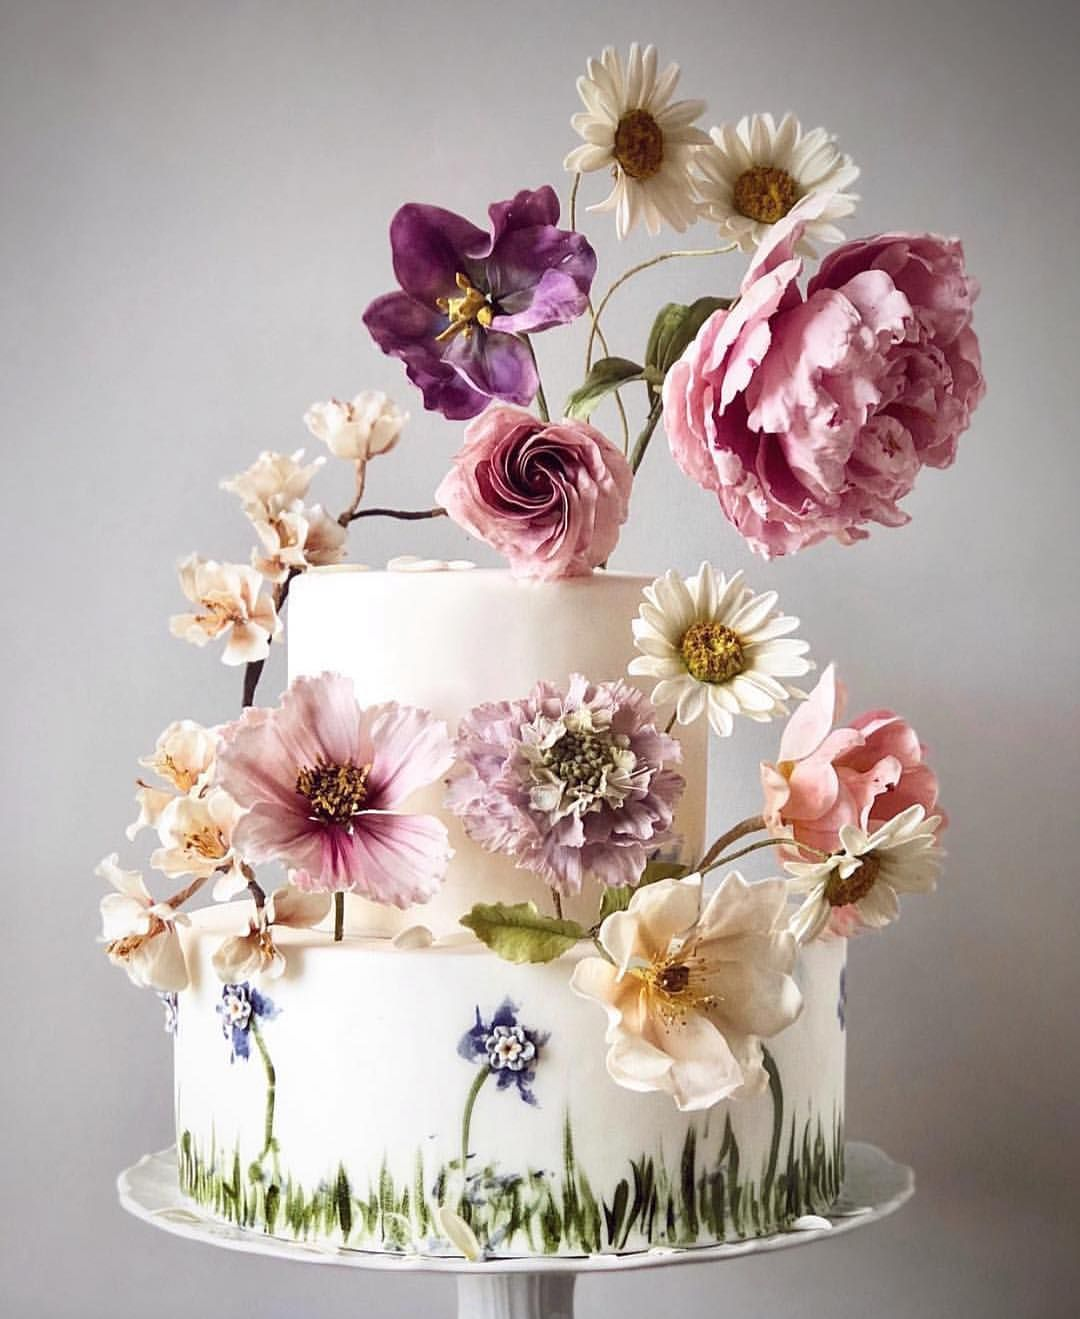 Feeling the spring vibes on this stunning cake by